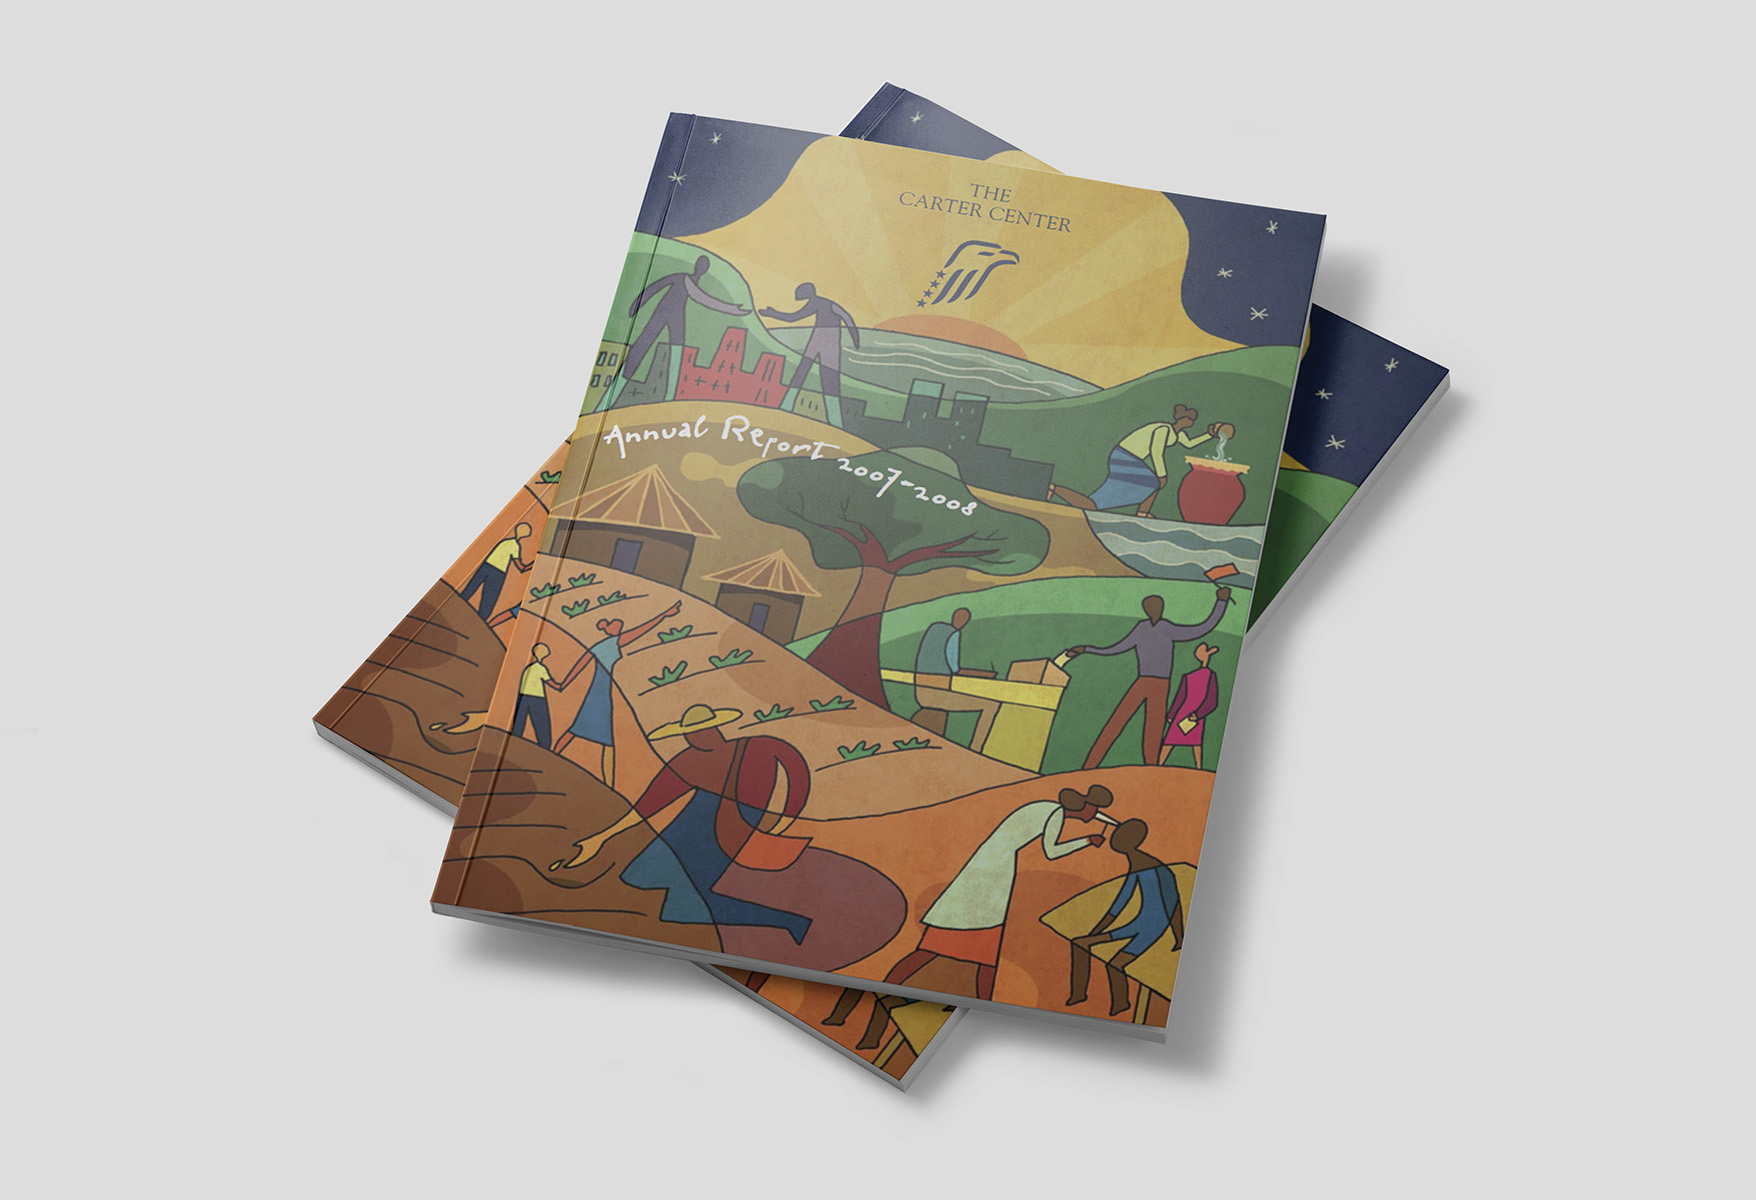 Final illustration as seen on The Carter Center Annual Report 2007 - 2008 publication.